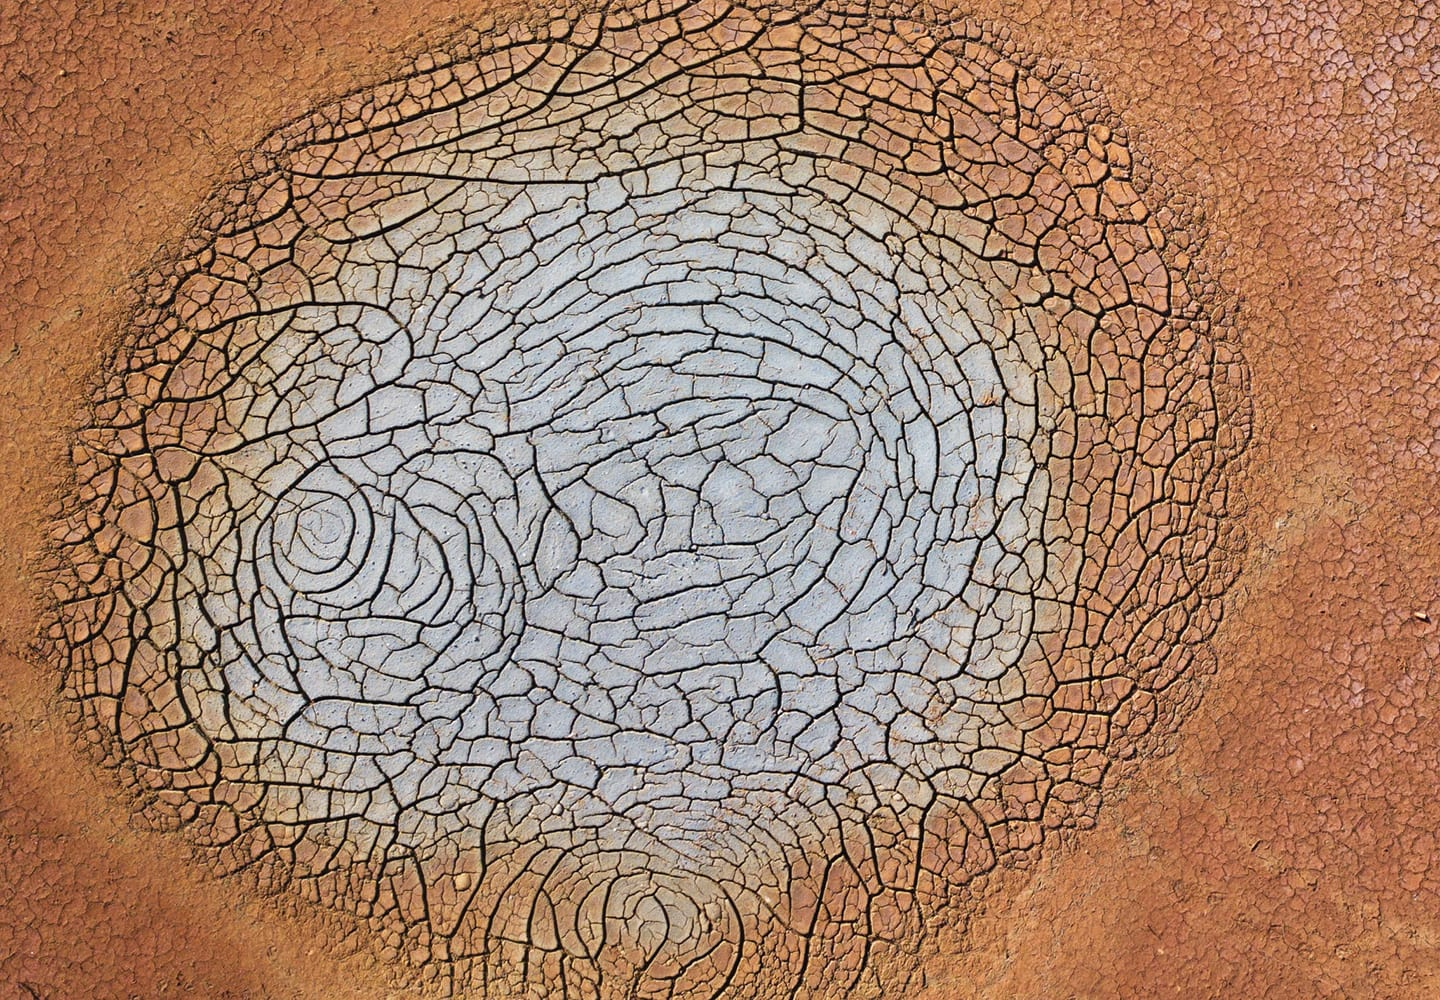 Dry and cracked red earth